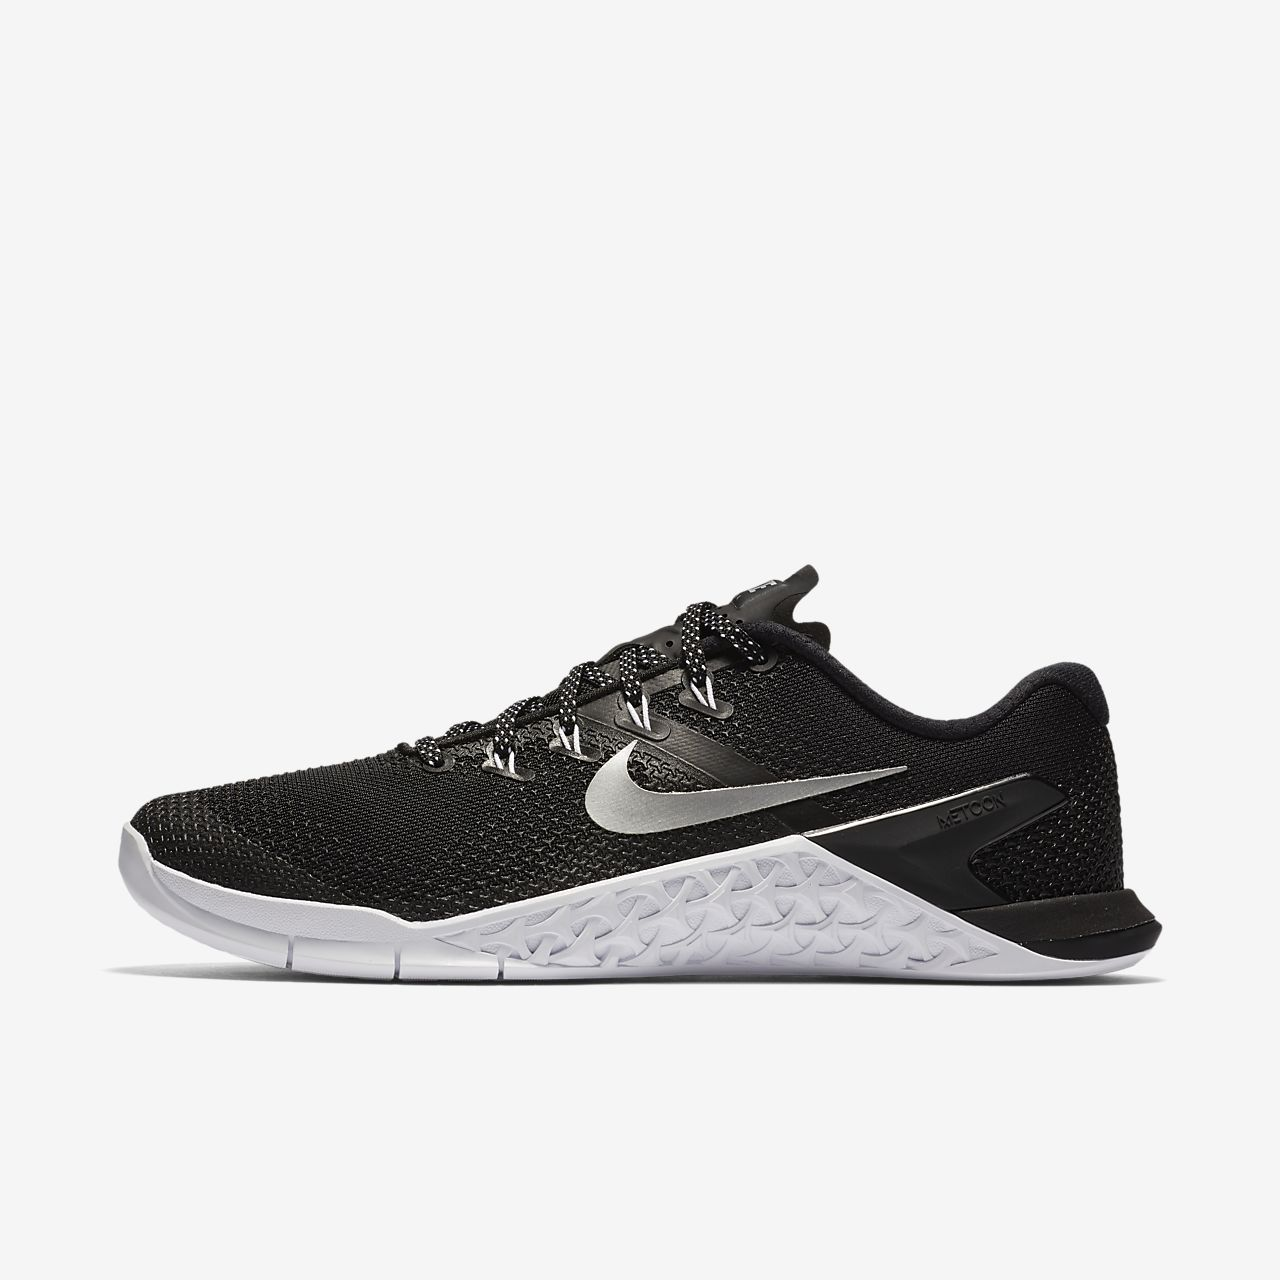 new style 4dd6d 34f15 ... Weightlifting Shoe Nike Metcon 4 Women s Cross Training, Weightlifting  Shoe